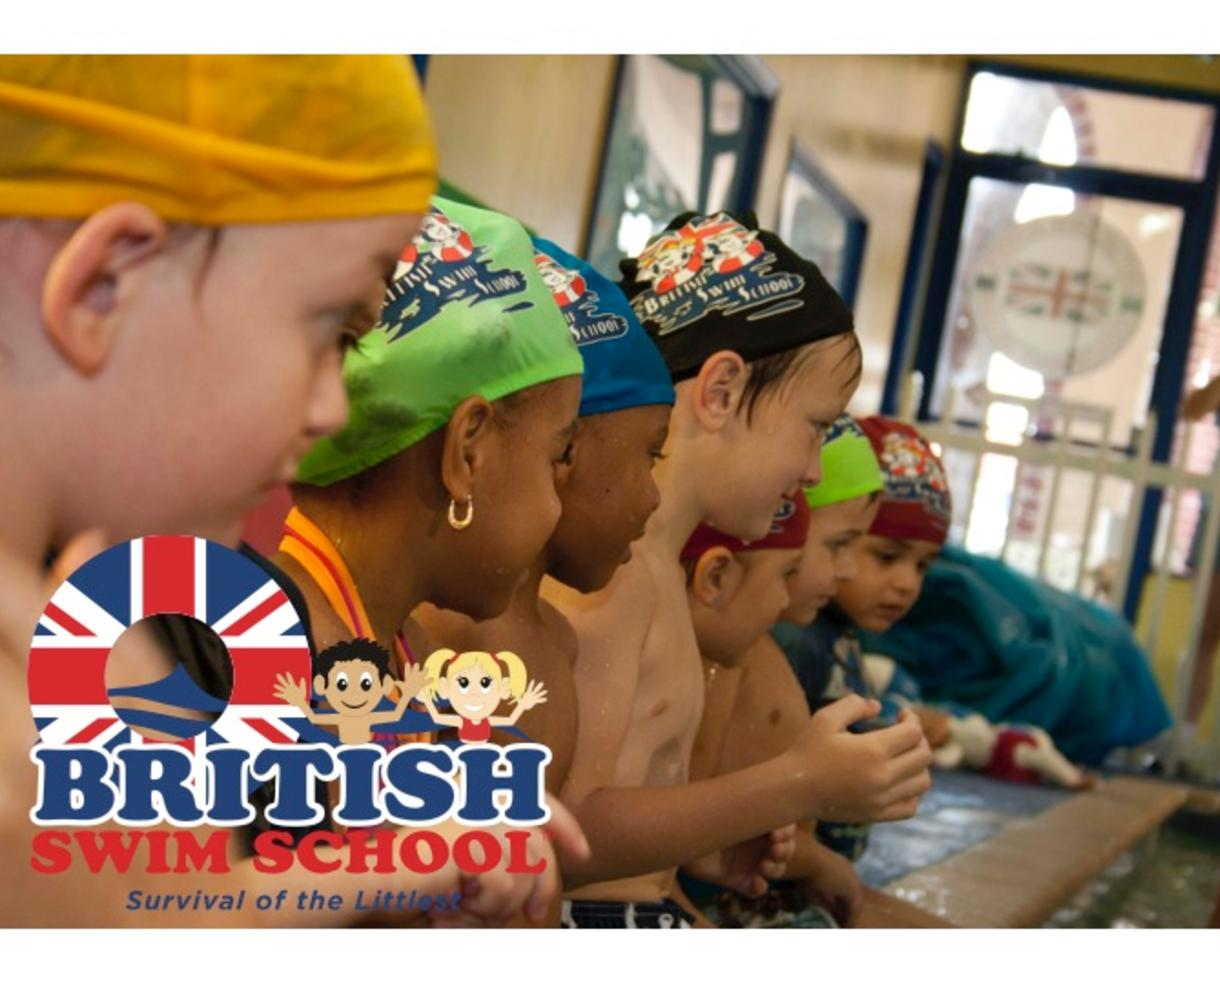 $169 for 8 Group Swimming Lessons at British Swim School - Includes 2017 Registration Fee! 7 Locations in Fairfax or Prince William County (37% Off)